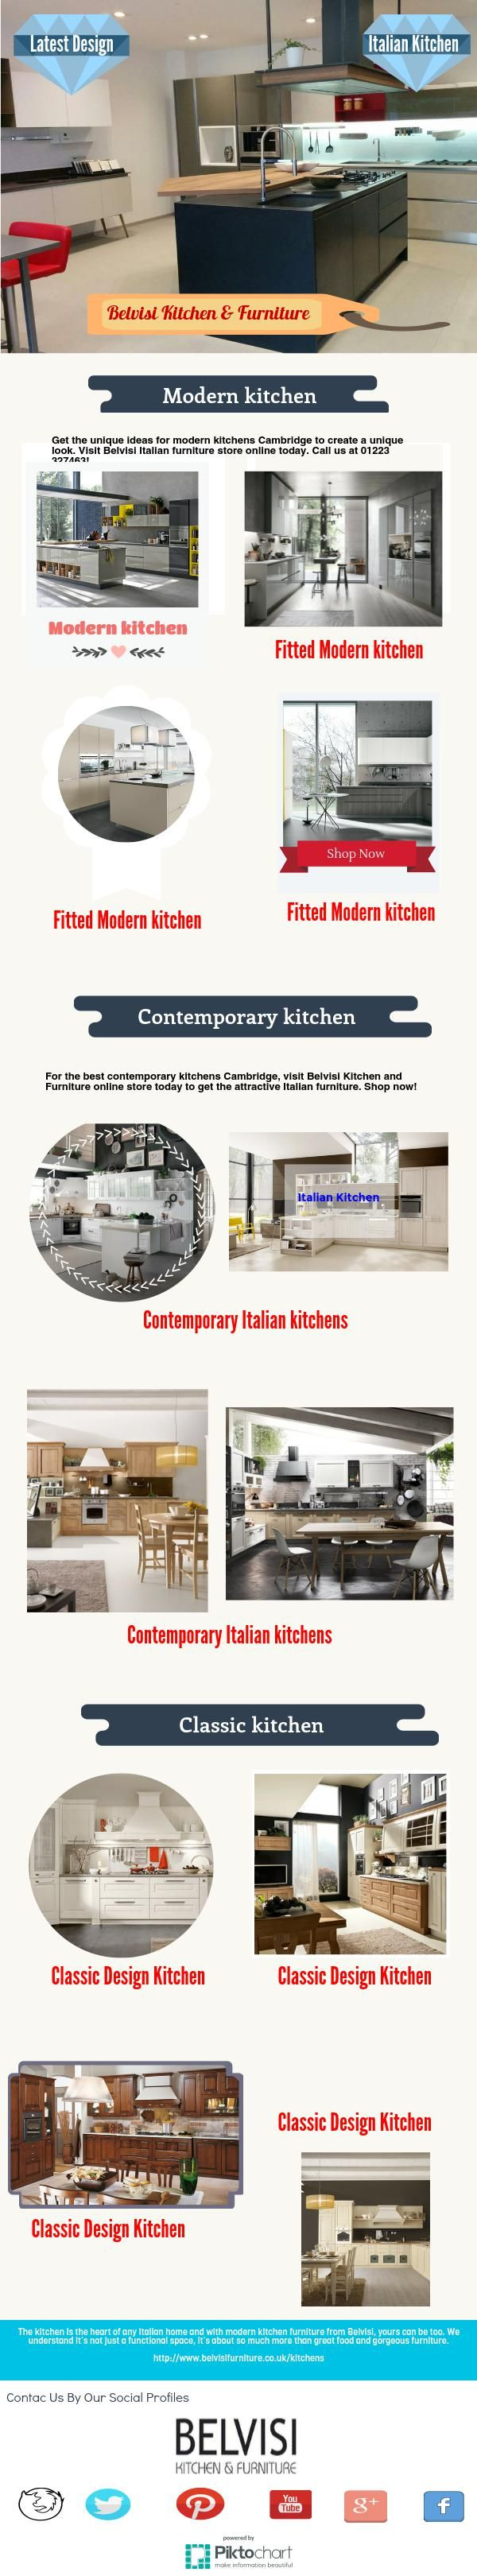 51 best Contemporary Italian Kitchens & Dining images on Pinterest